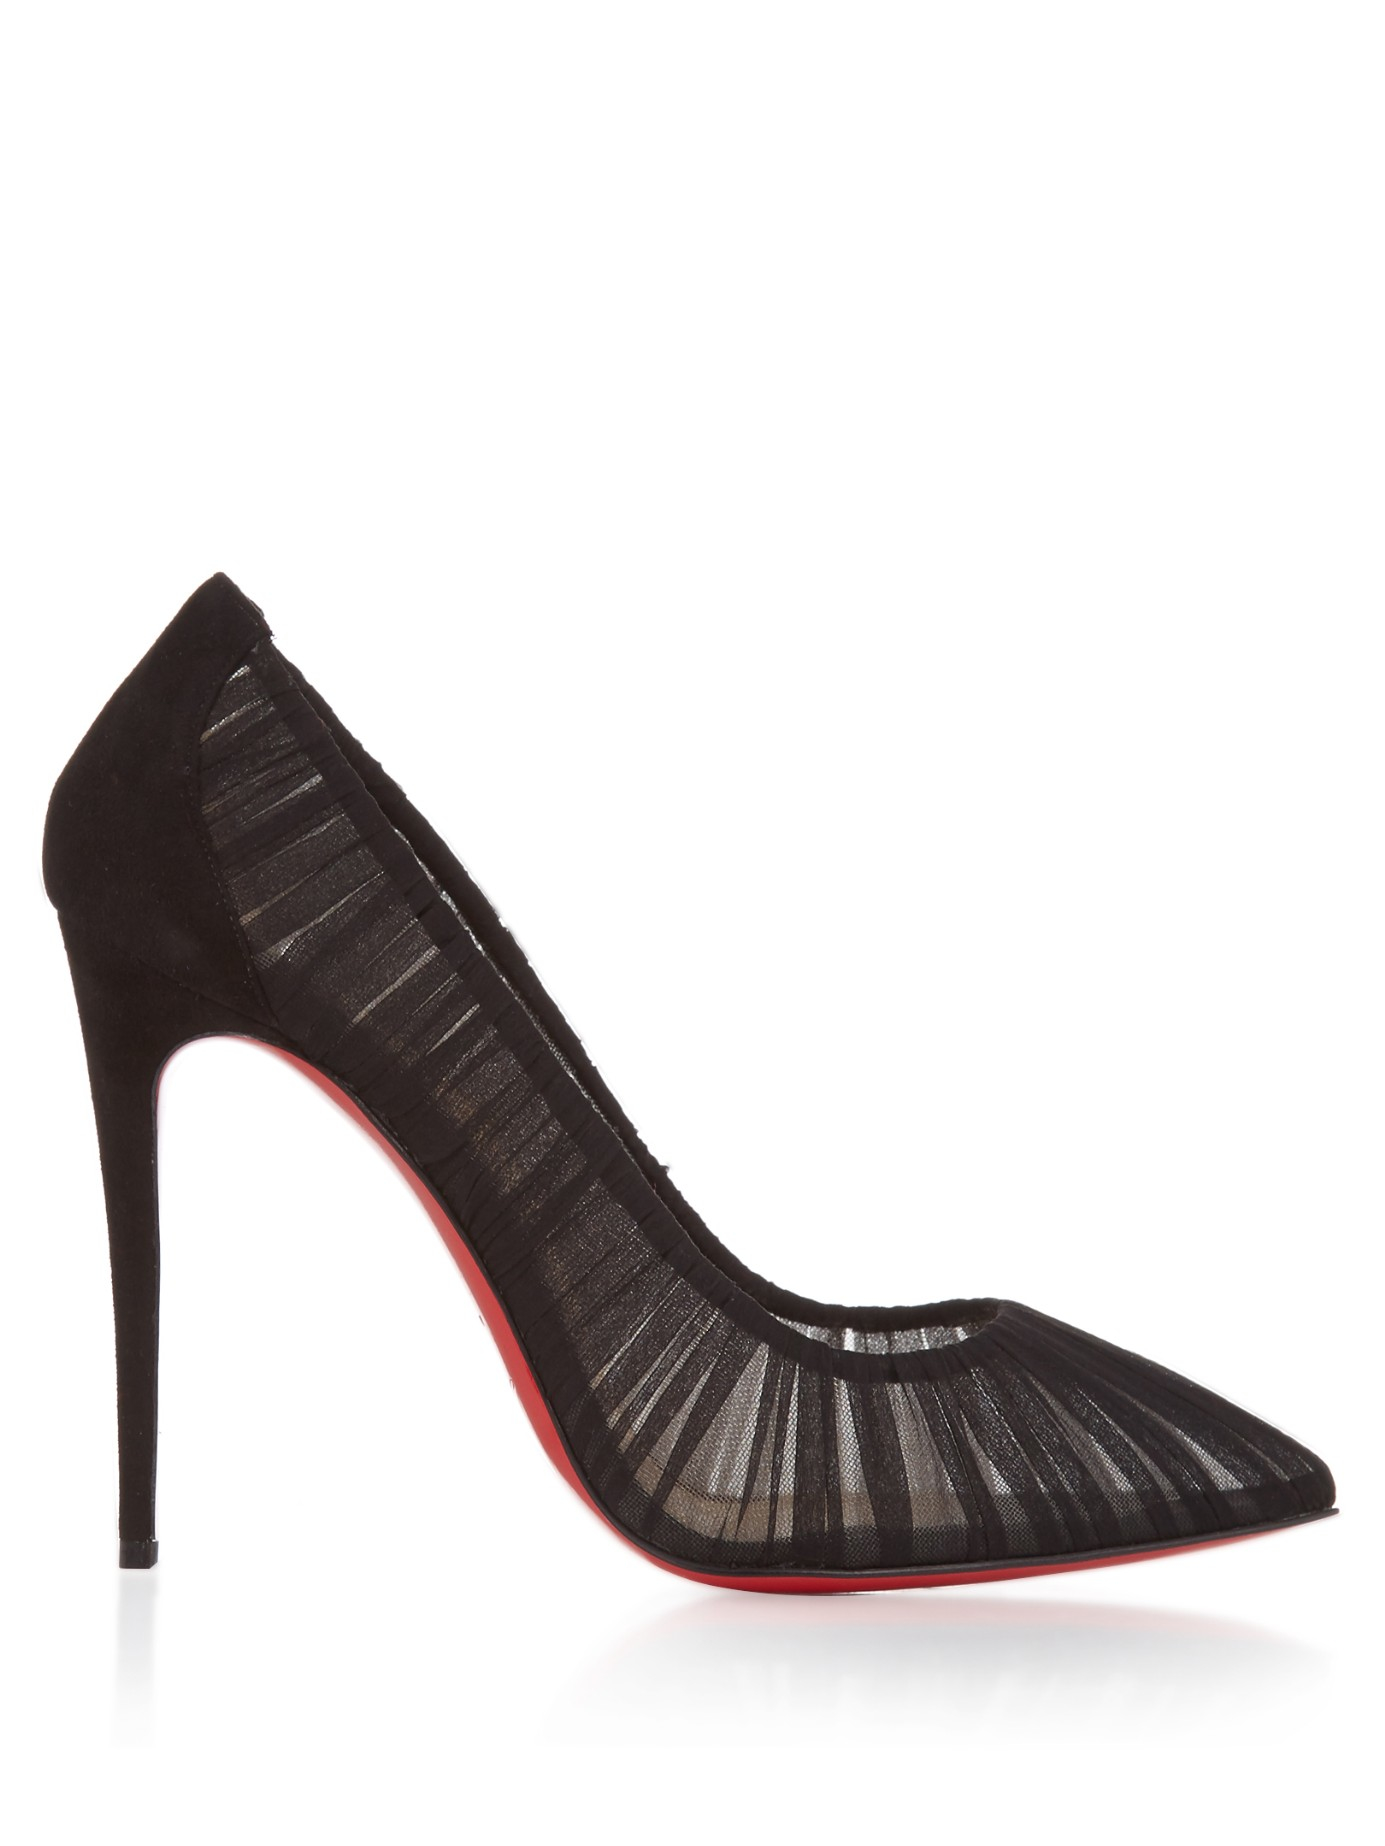 6d4a3c8523c2 Lyst - Christian Louboutin Women s Follie Draperia Pumps in Black